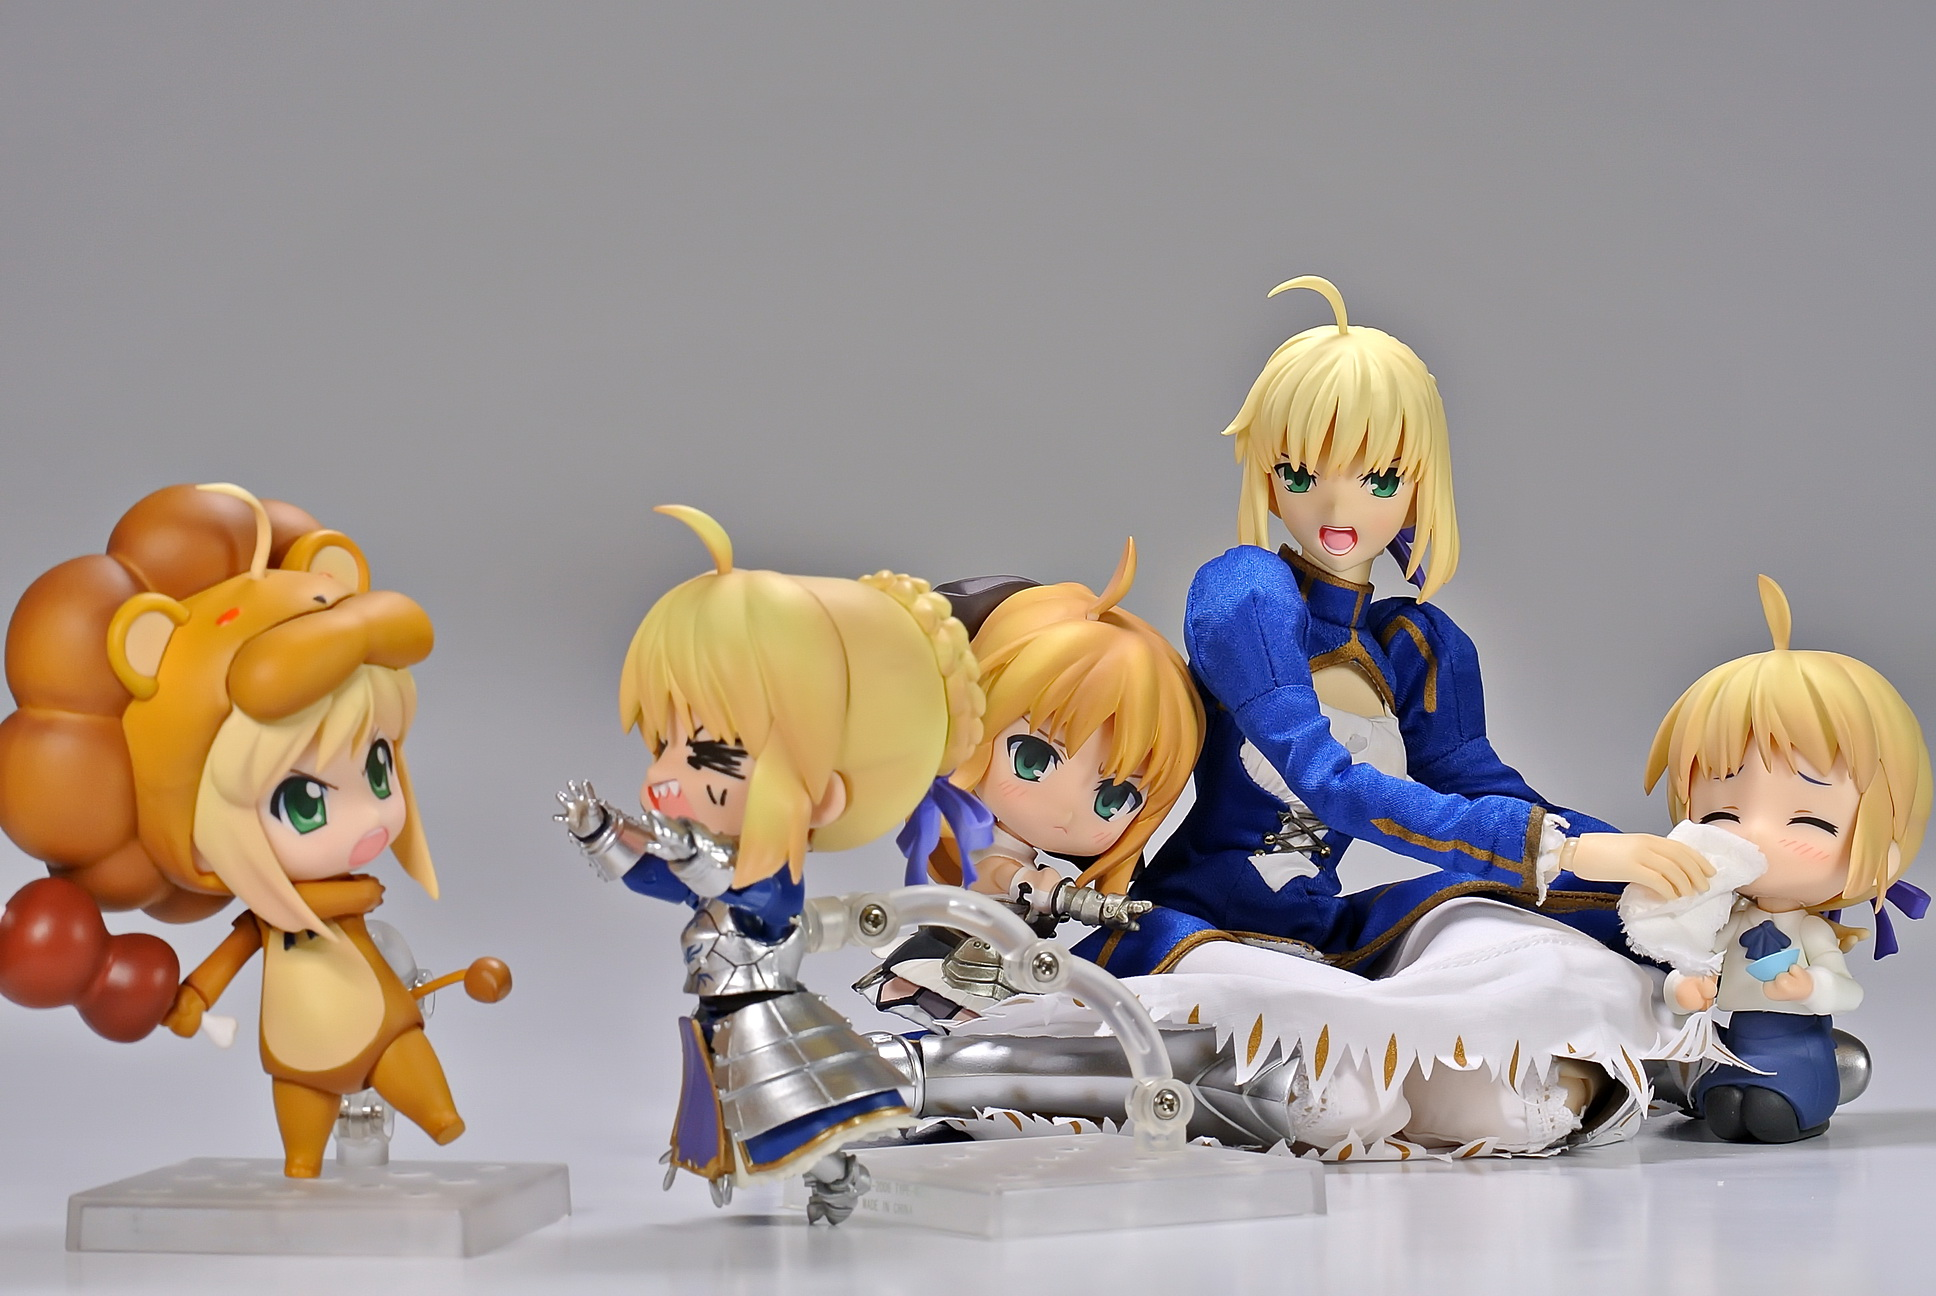 nendoroid capcom saber saber_lion type_moon saber_lily good_smile_company hobby_japan fate/stay_night fate/tiger_colosseum medicom_toy fate/zero nitroplus nendoron fate/unlimited_codes oda_tsuyoshi takano_meishi real_action_heroes perfect-studio ufotable kawagoe_hiromitsu